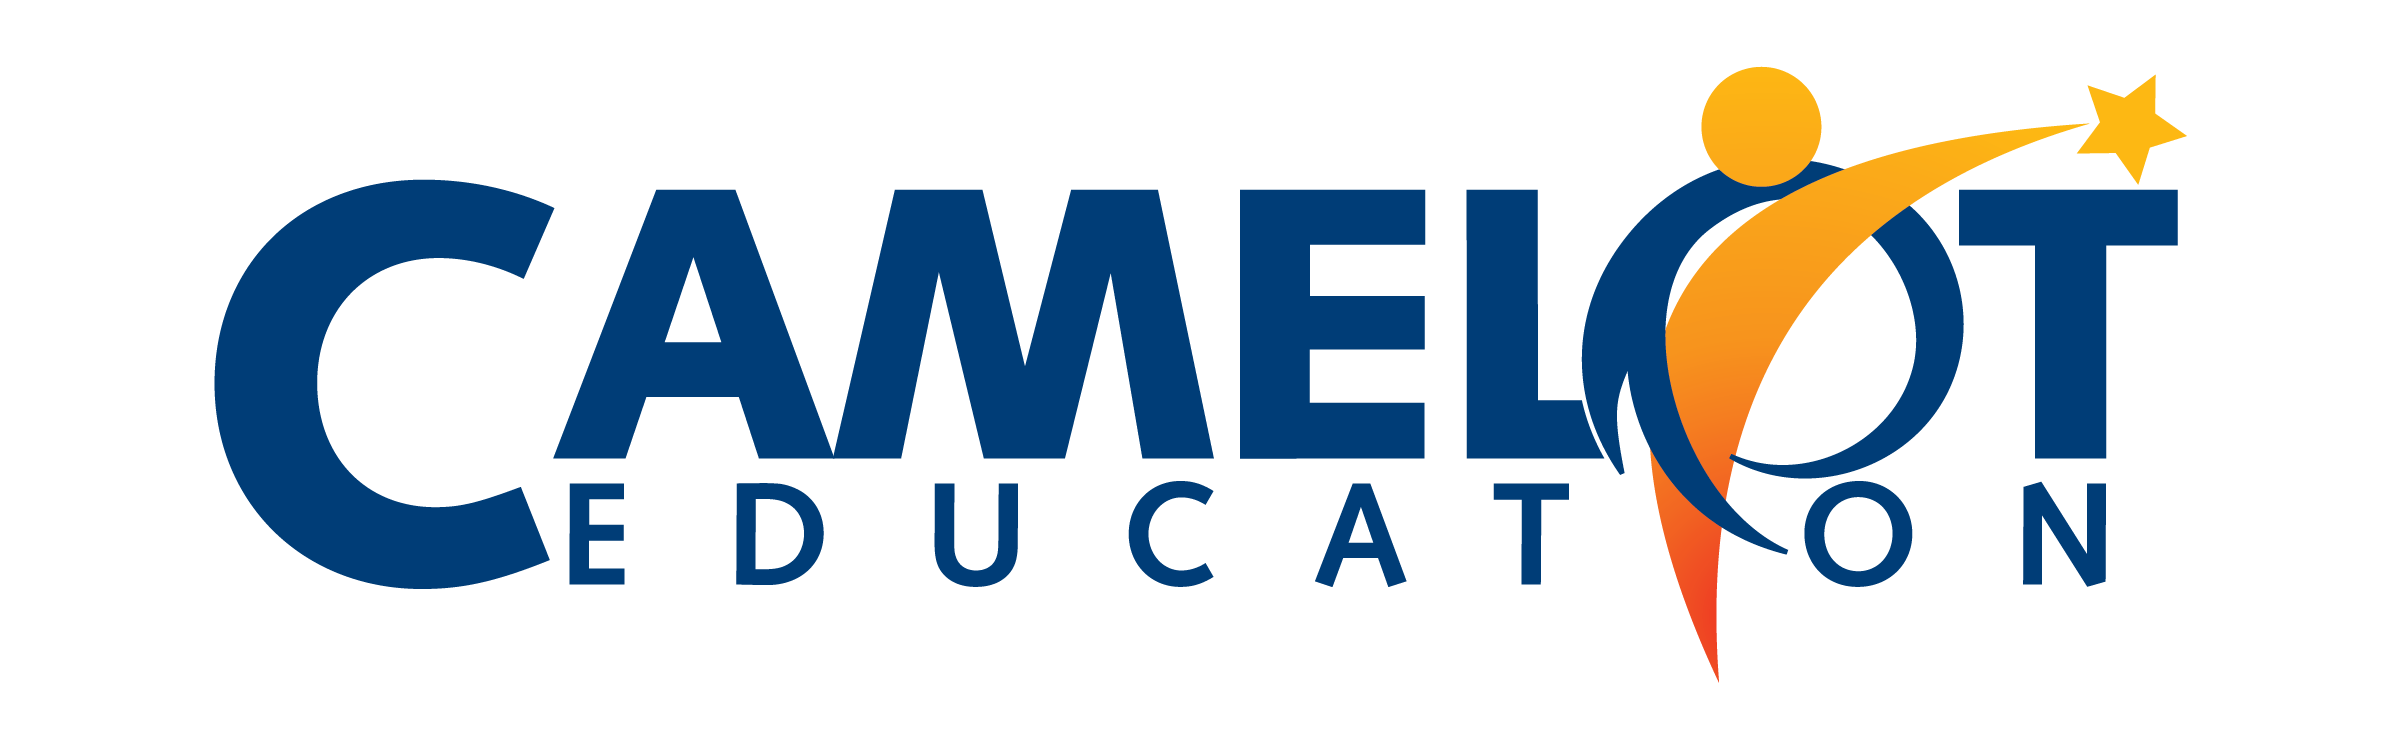 Camelot Education logo